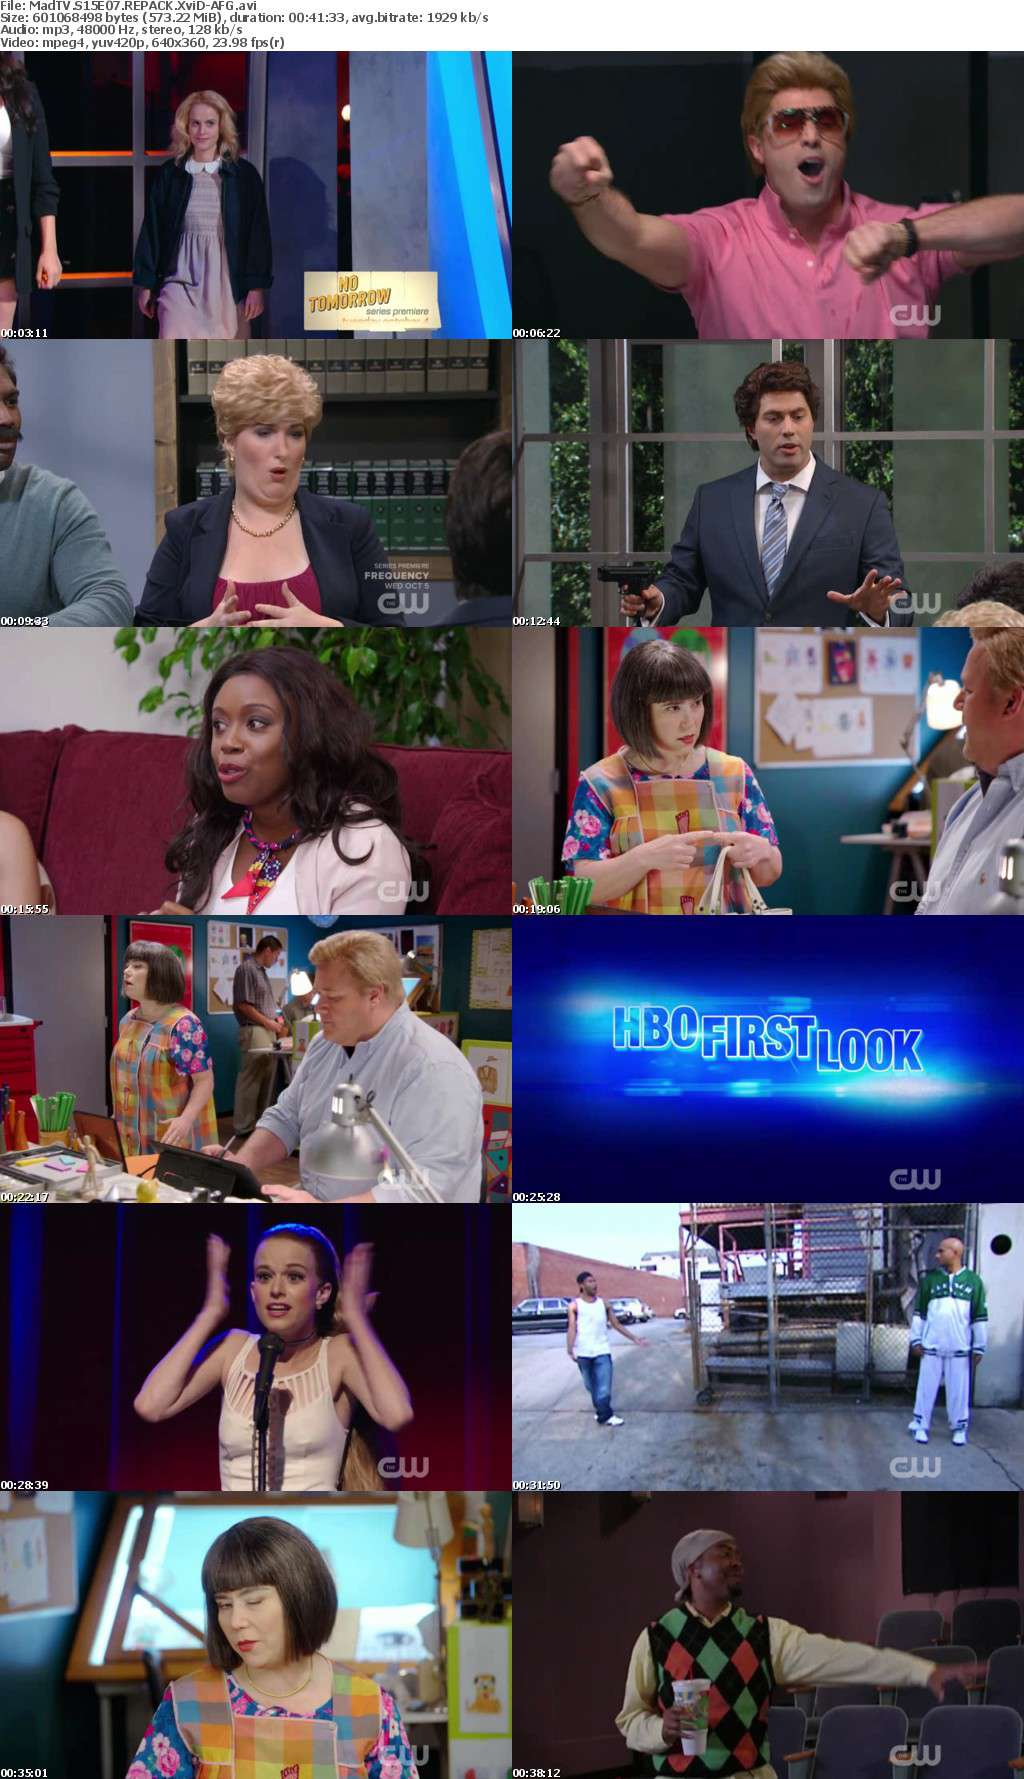 MadTV S15E07 REPACK XviD-AFG